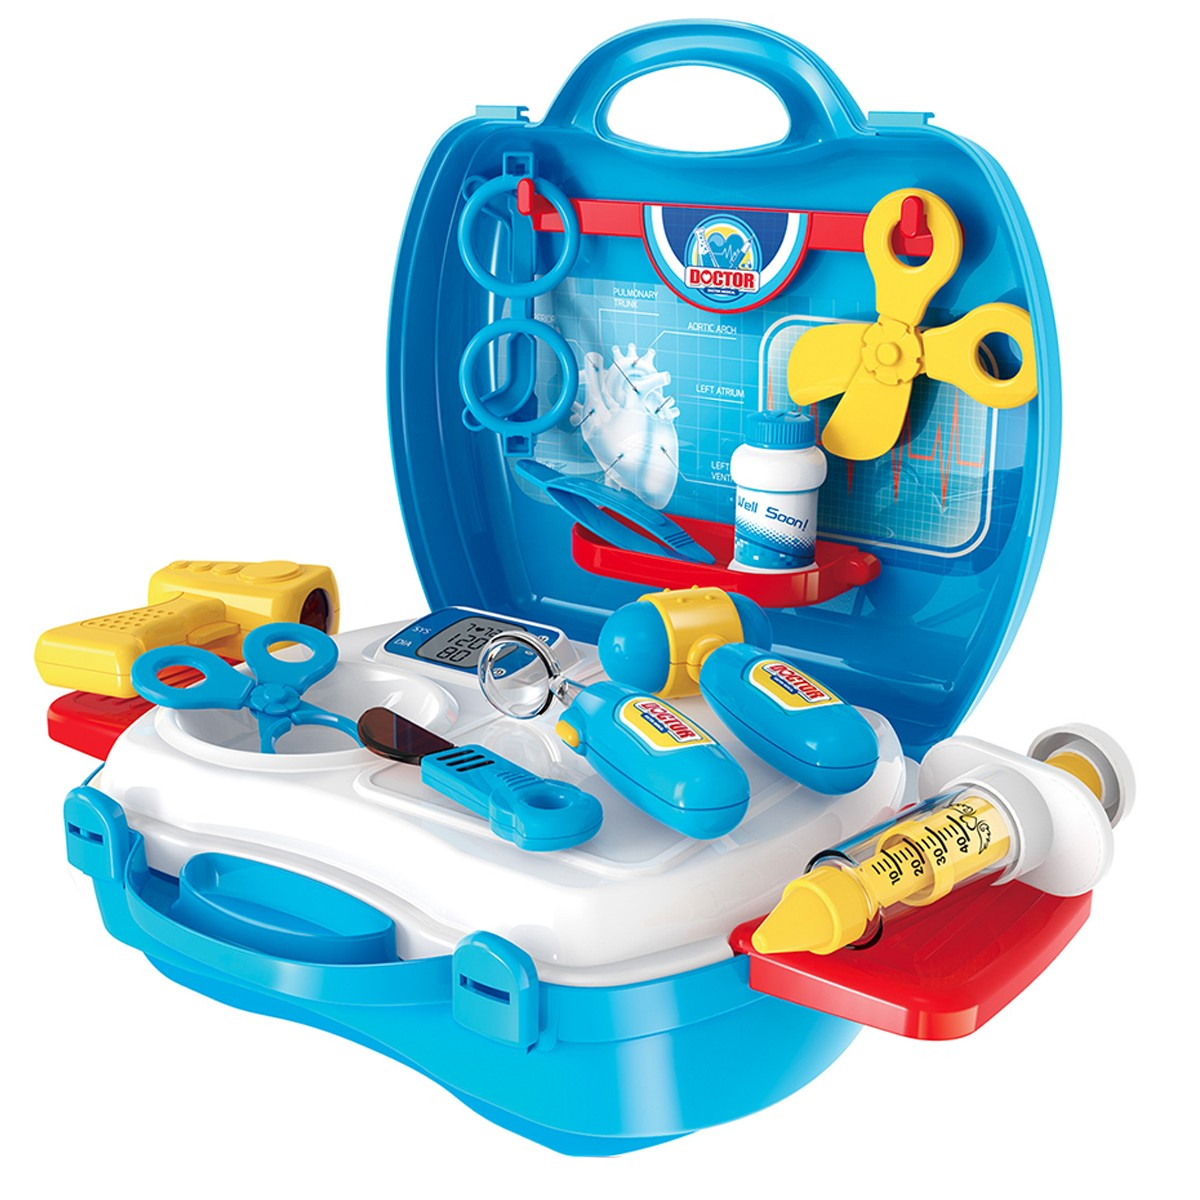 Suitcase Play Sets